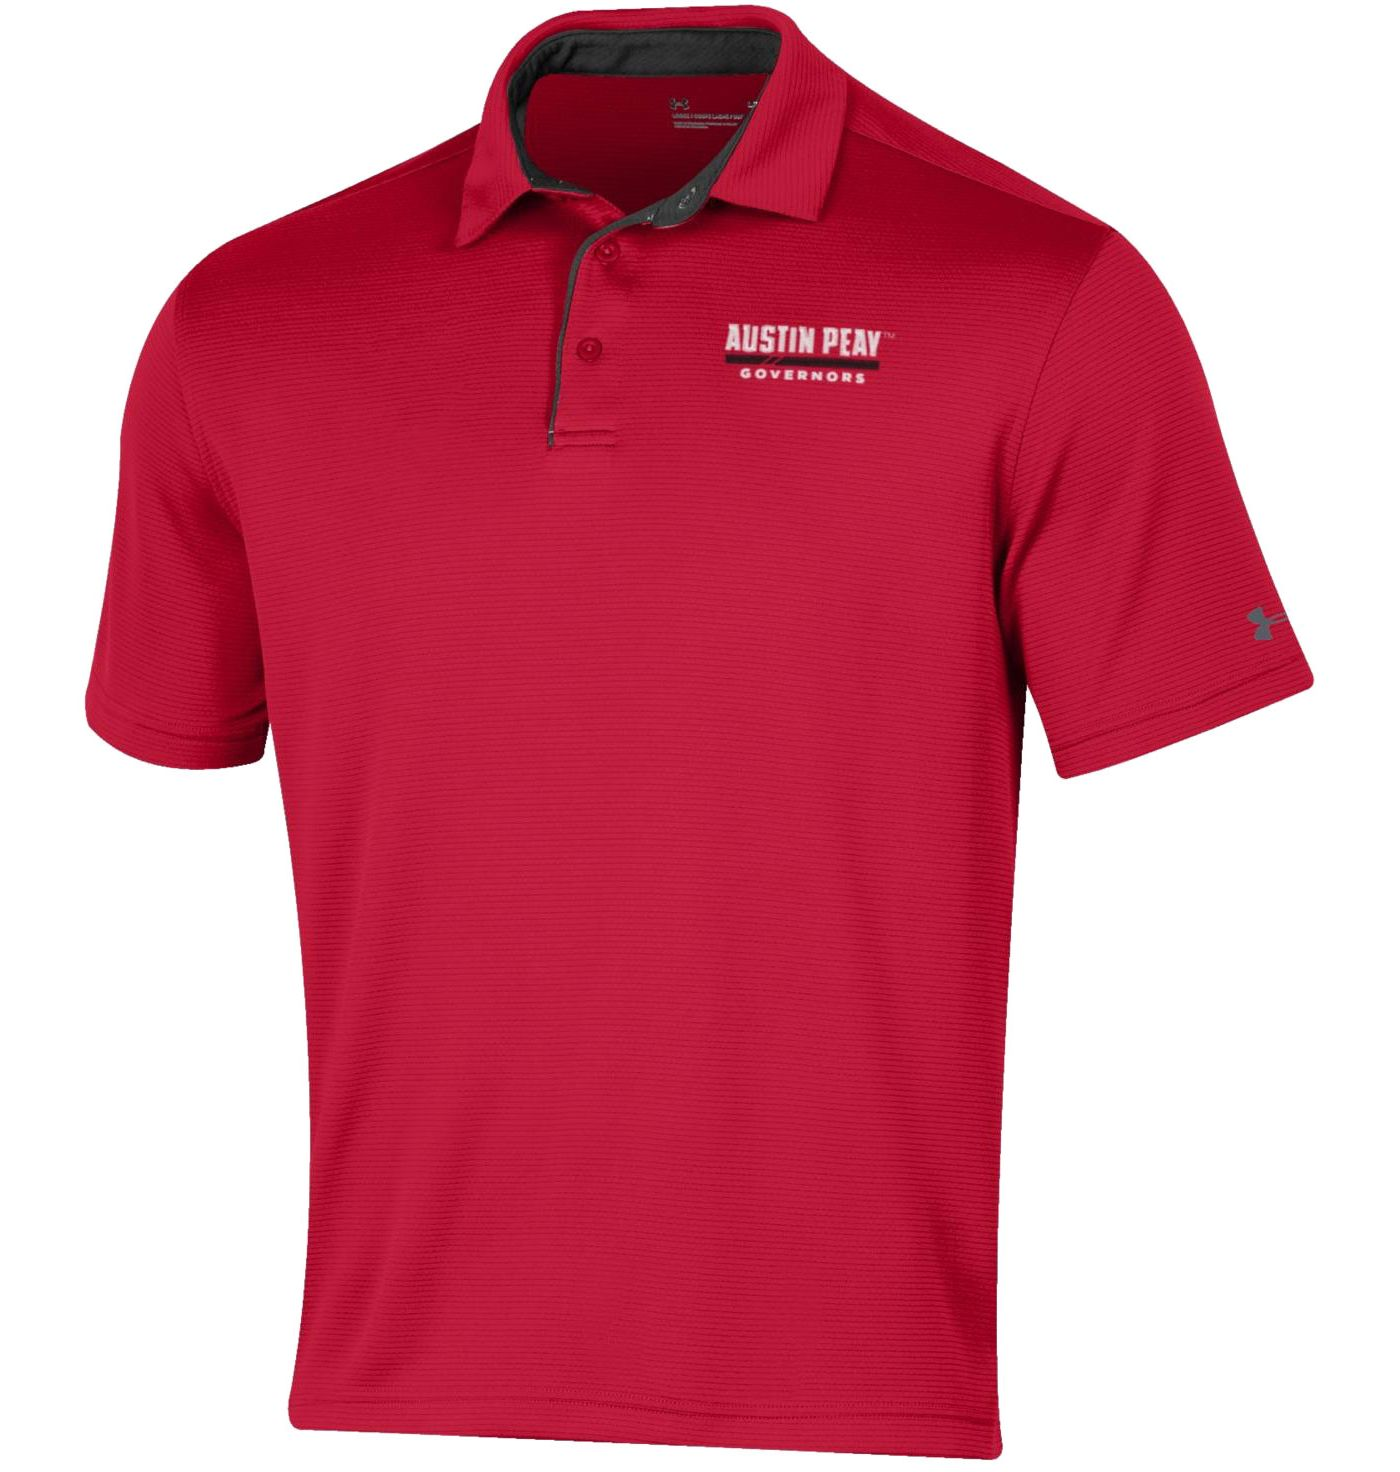 Under Armour Men's Austin Peay Governors Red Tech Polo